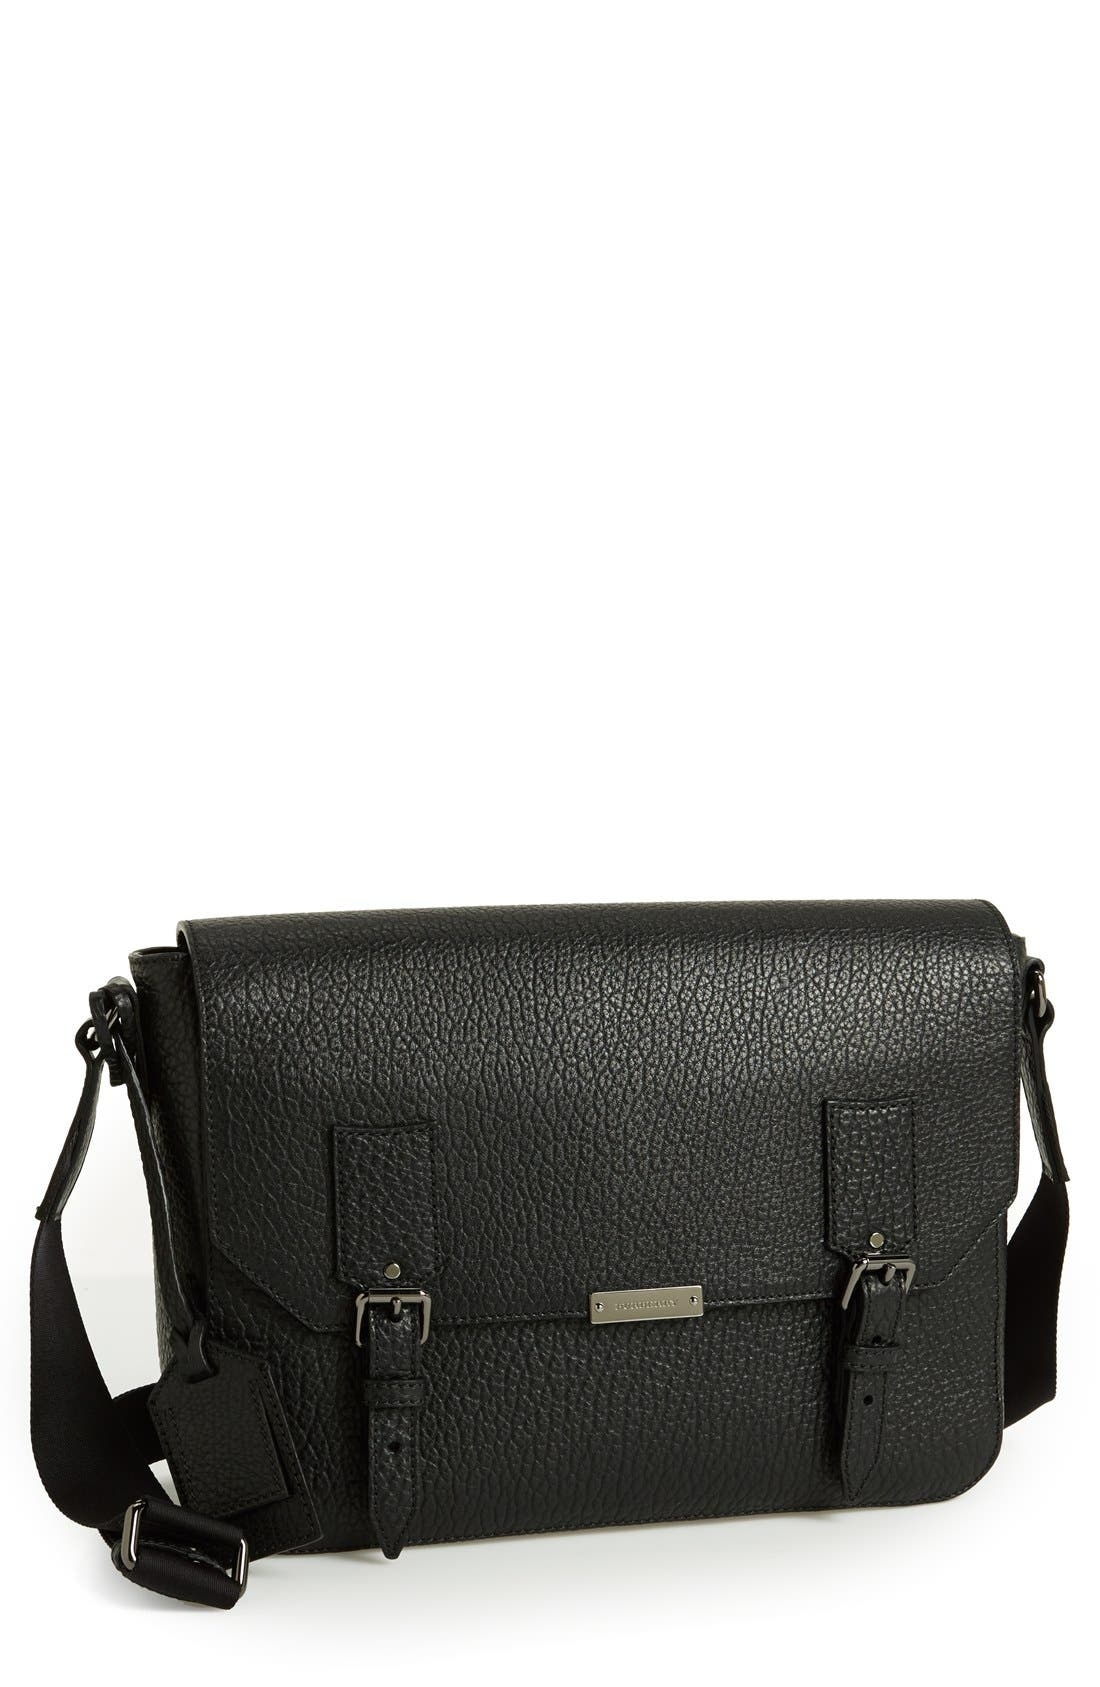 Main Image - Burberry 'Small Grifford' Leather Messenger Bag